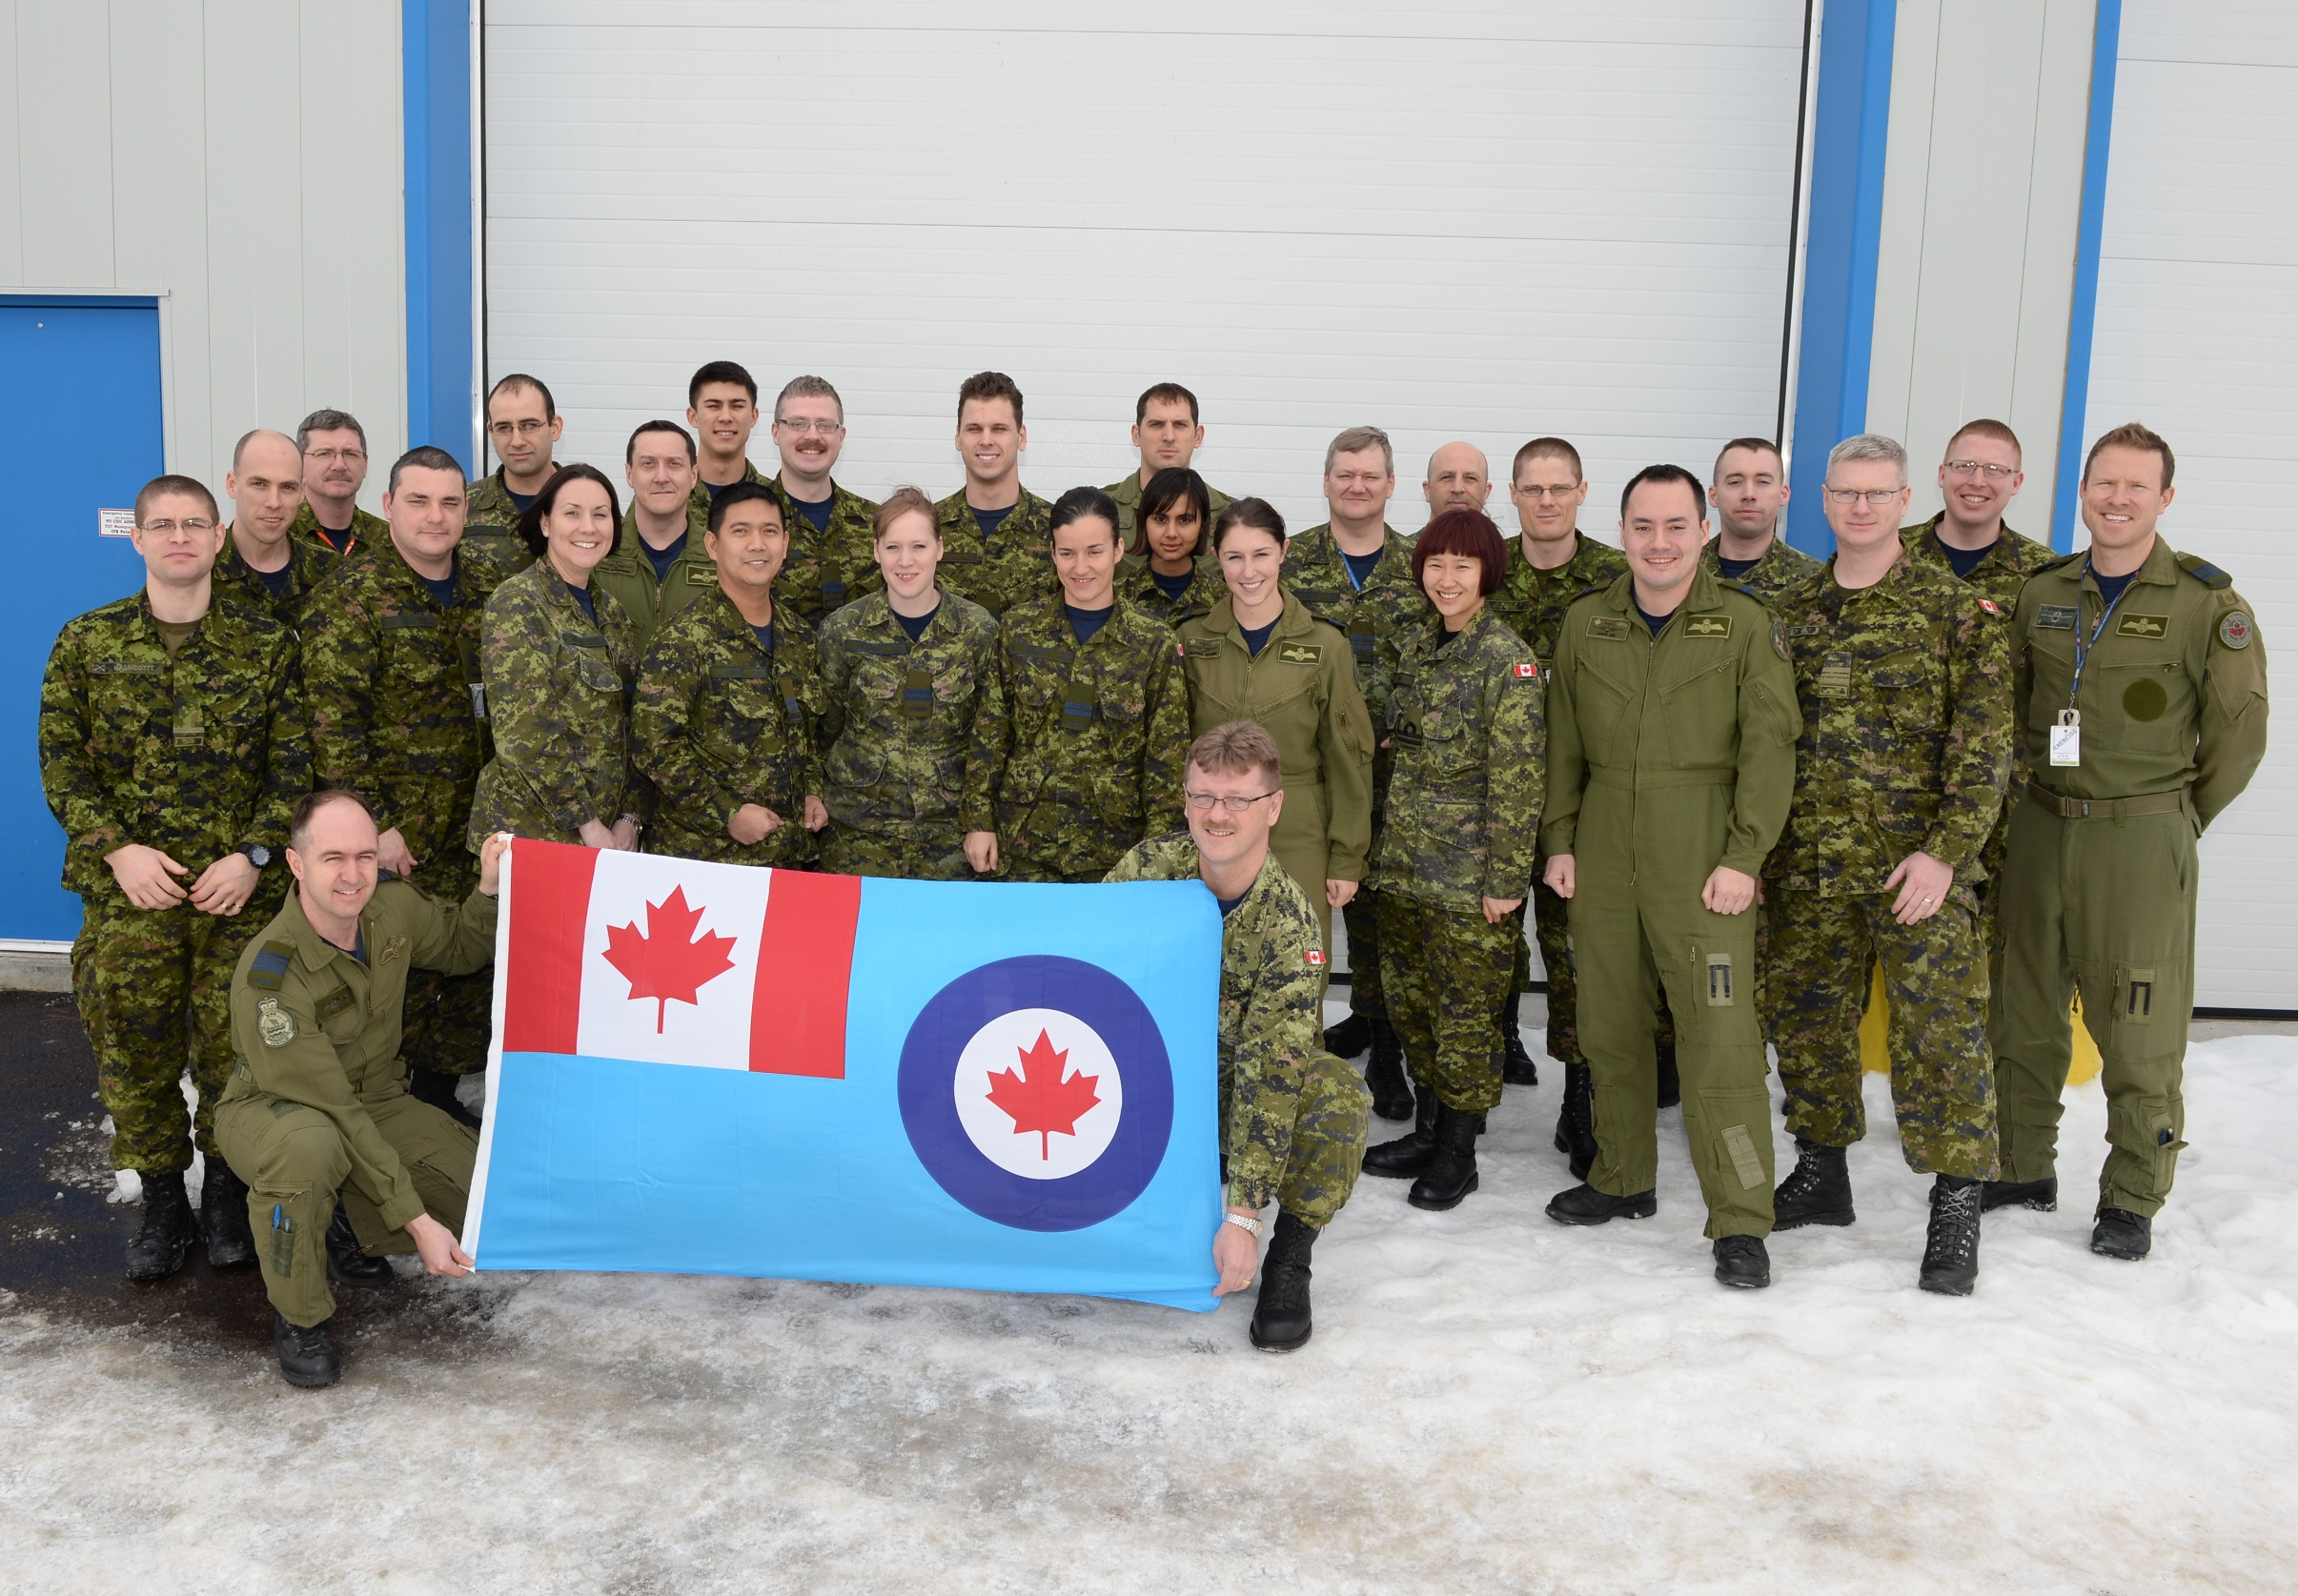 Personnel from 2 Canadian Mechanized Brigade Group and the RCAF participated in Unified Resolve 2014 at Canadian Forces Base Petawawa from February 11 to 25